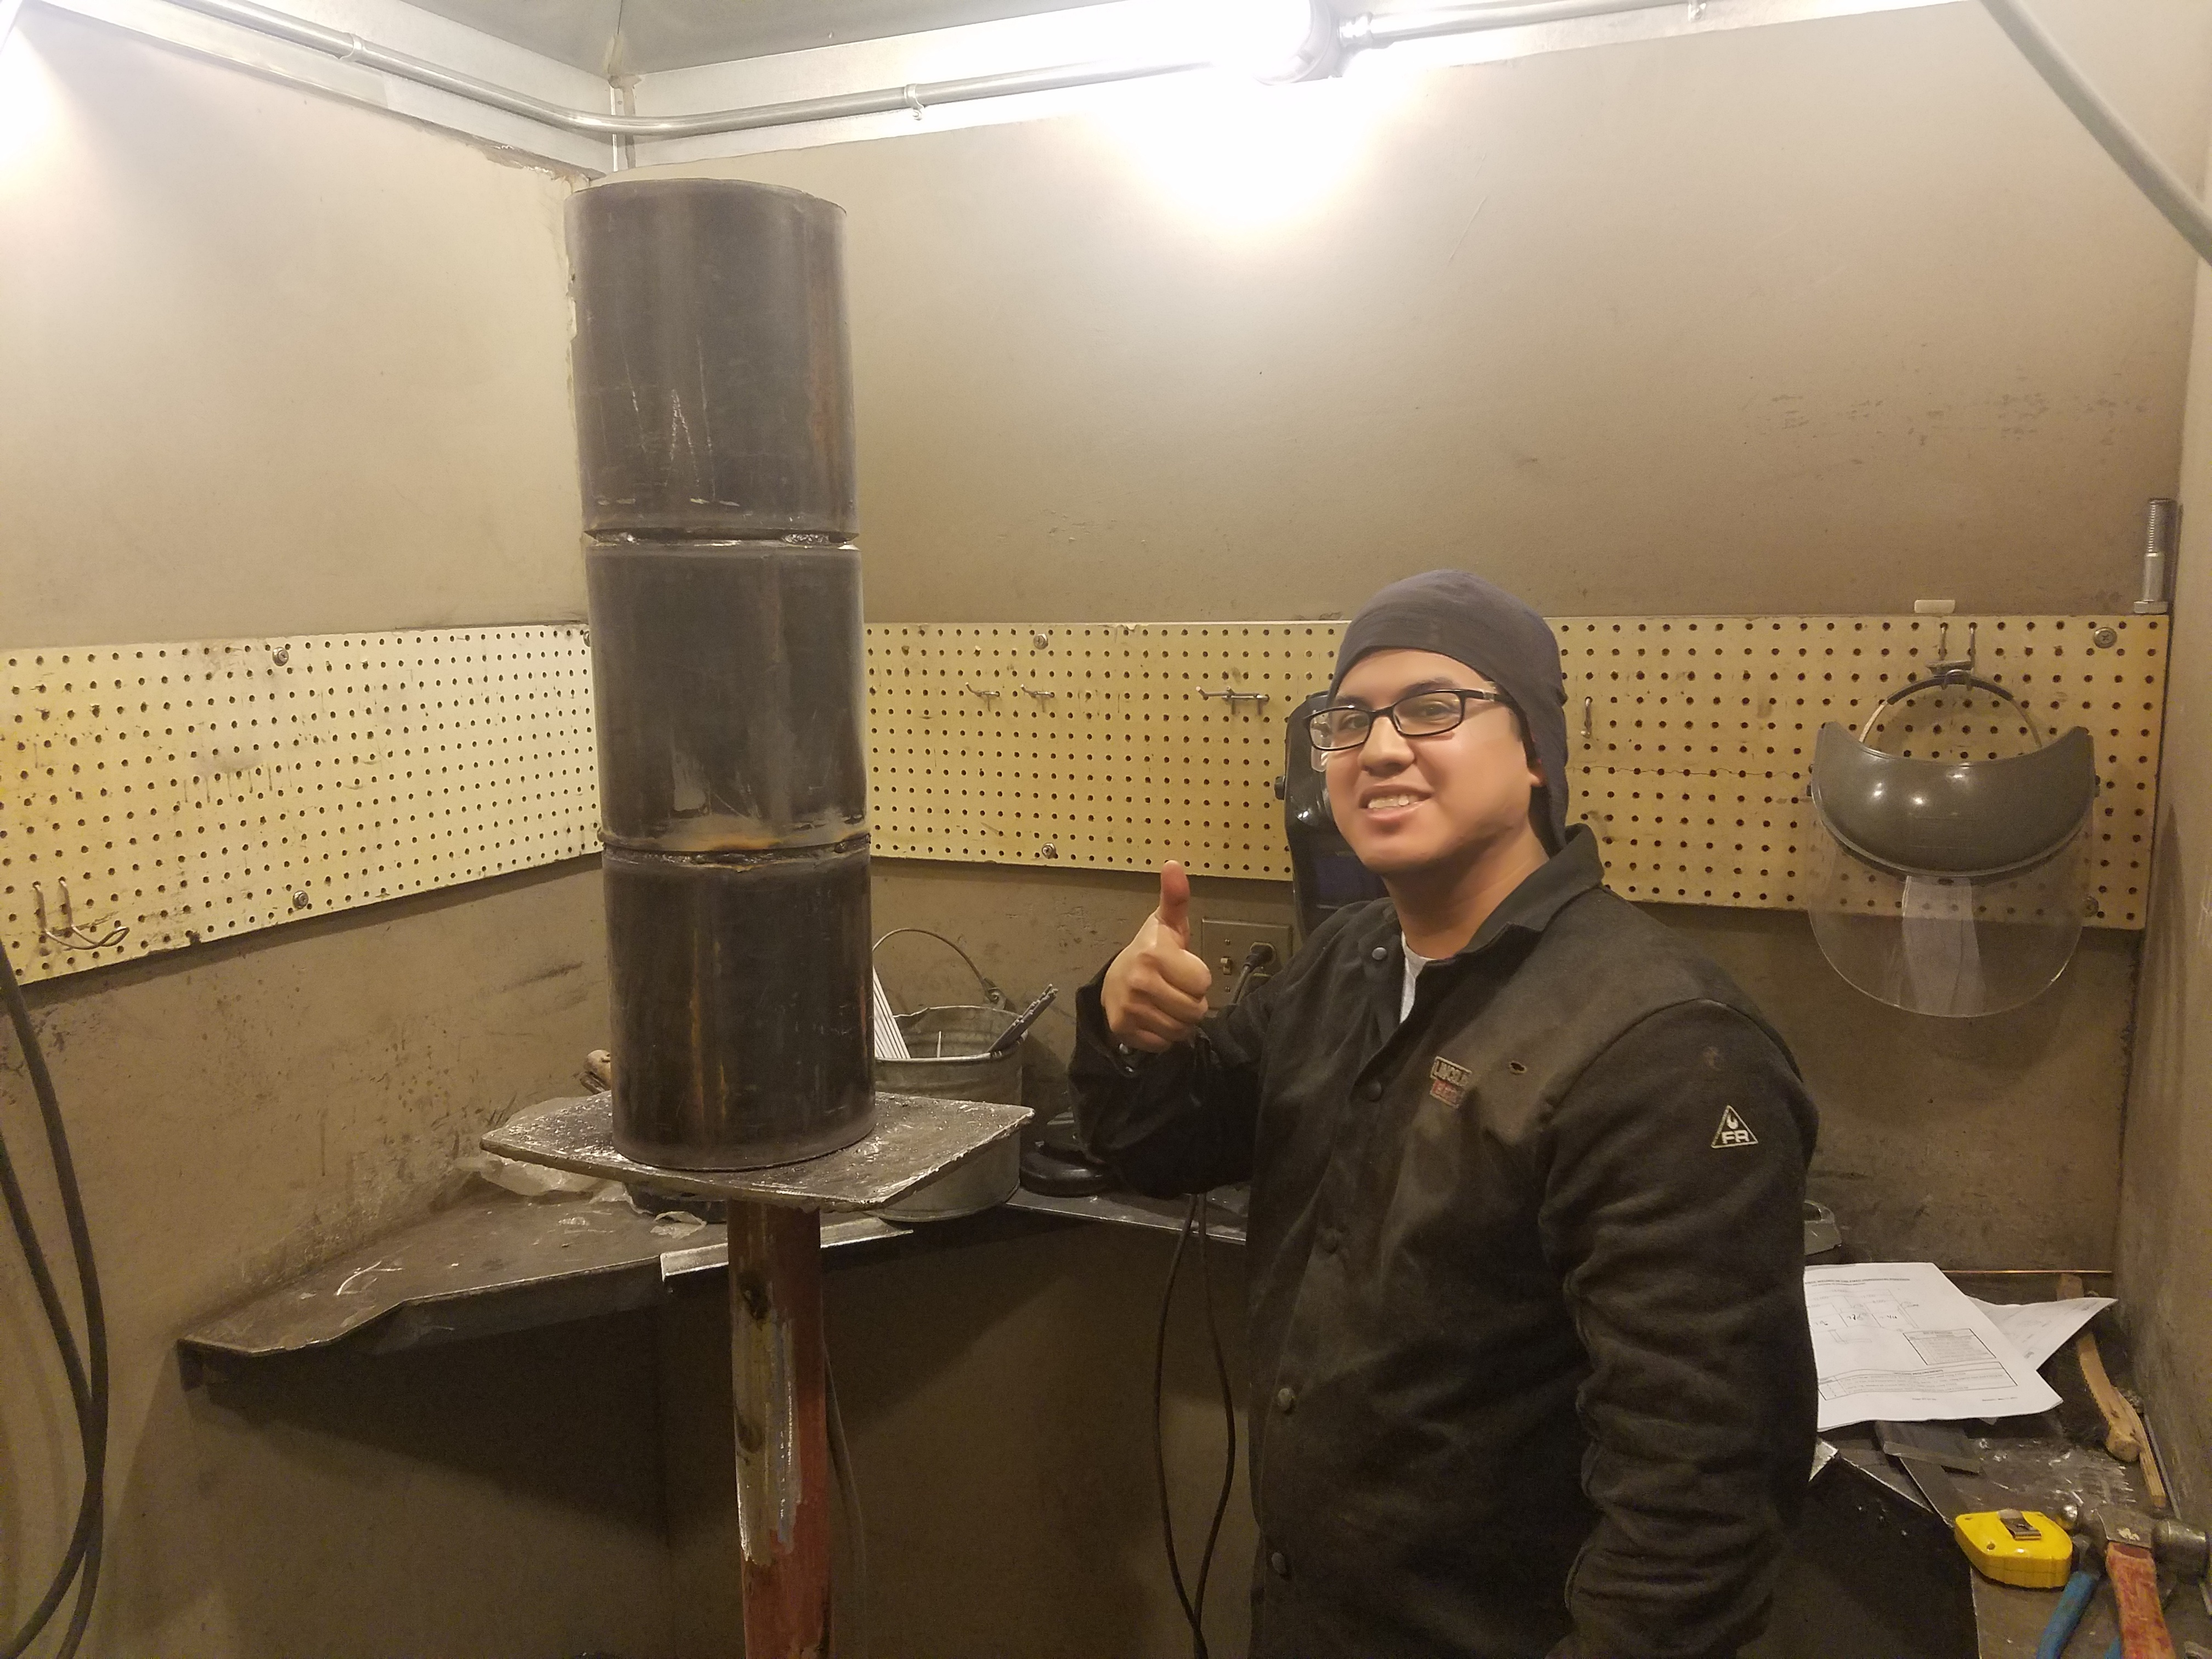 Mark Torres shows his welding project for the UA VIP JBLM Welding Program